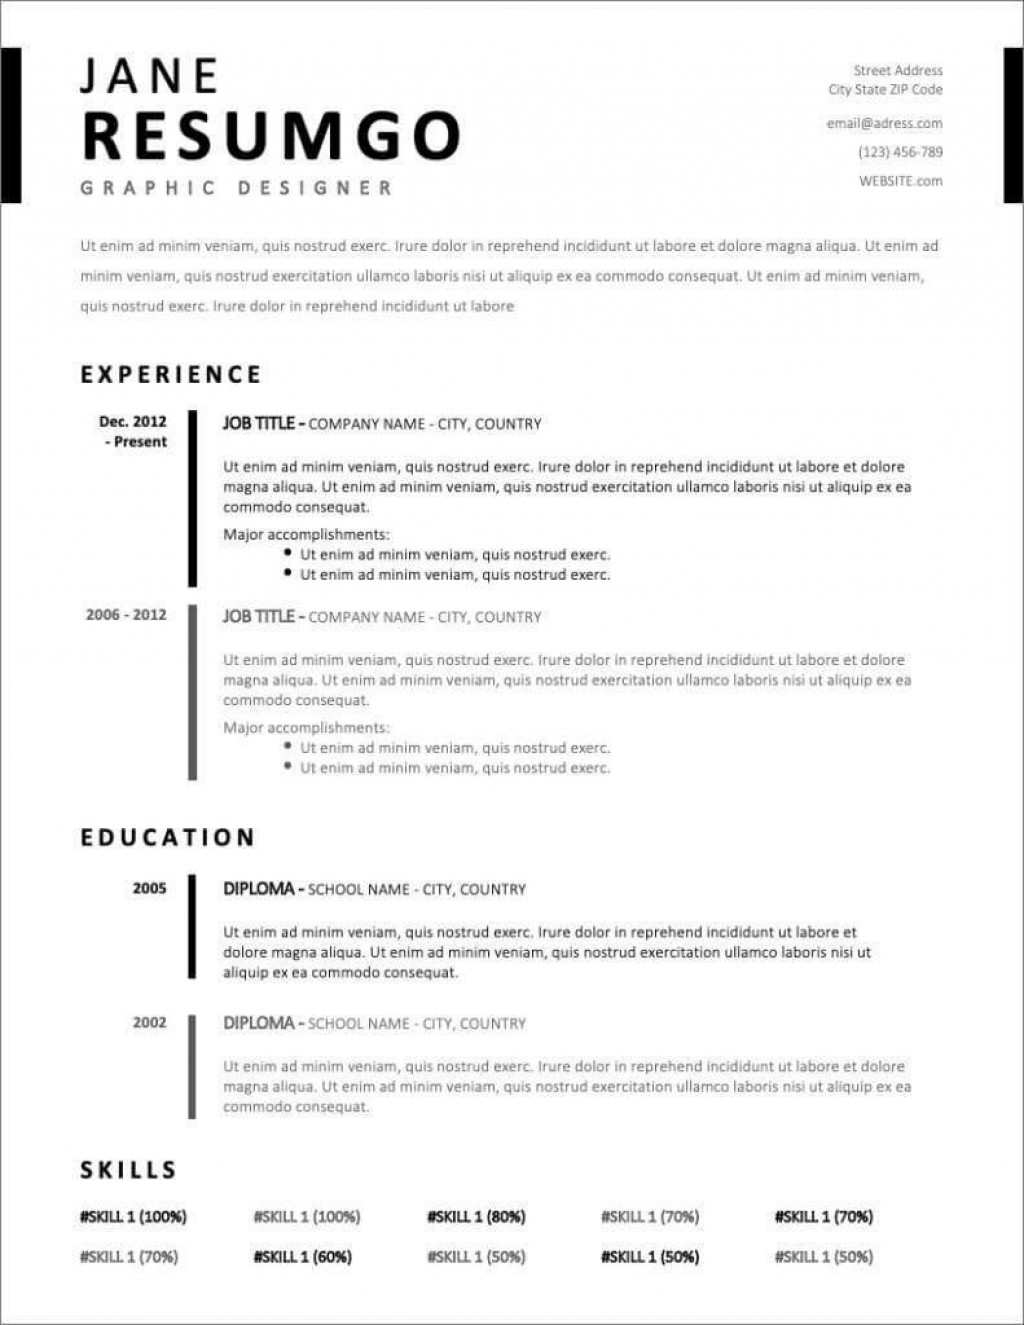 003 Astounding Free Resume Download Template High Def  2020 Word Document Microsoft 2010Large